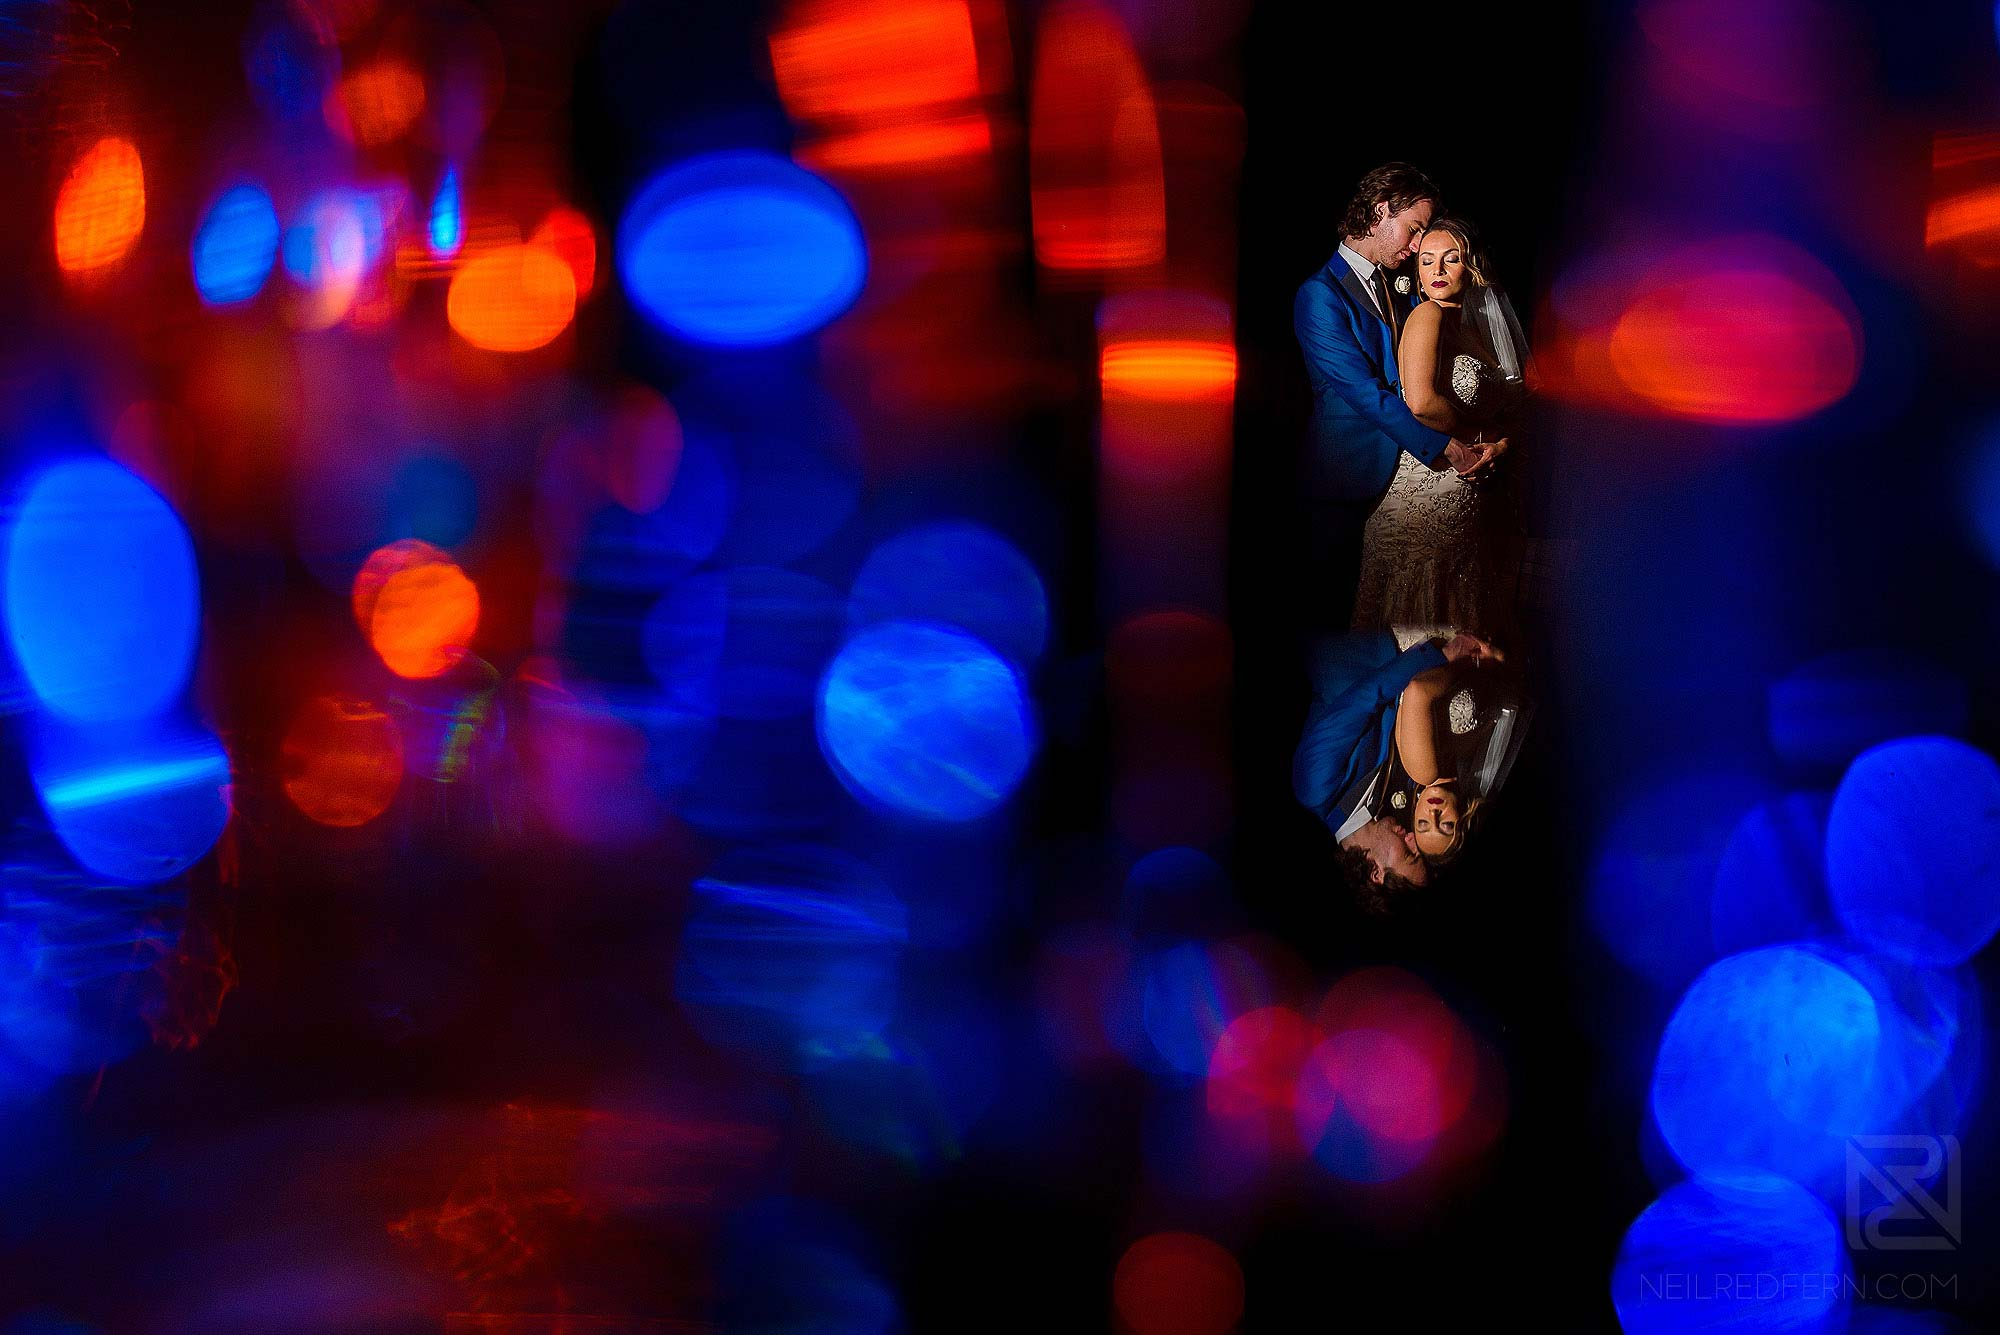 creative portrait of bride and groom during wedding photography workshop